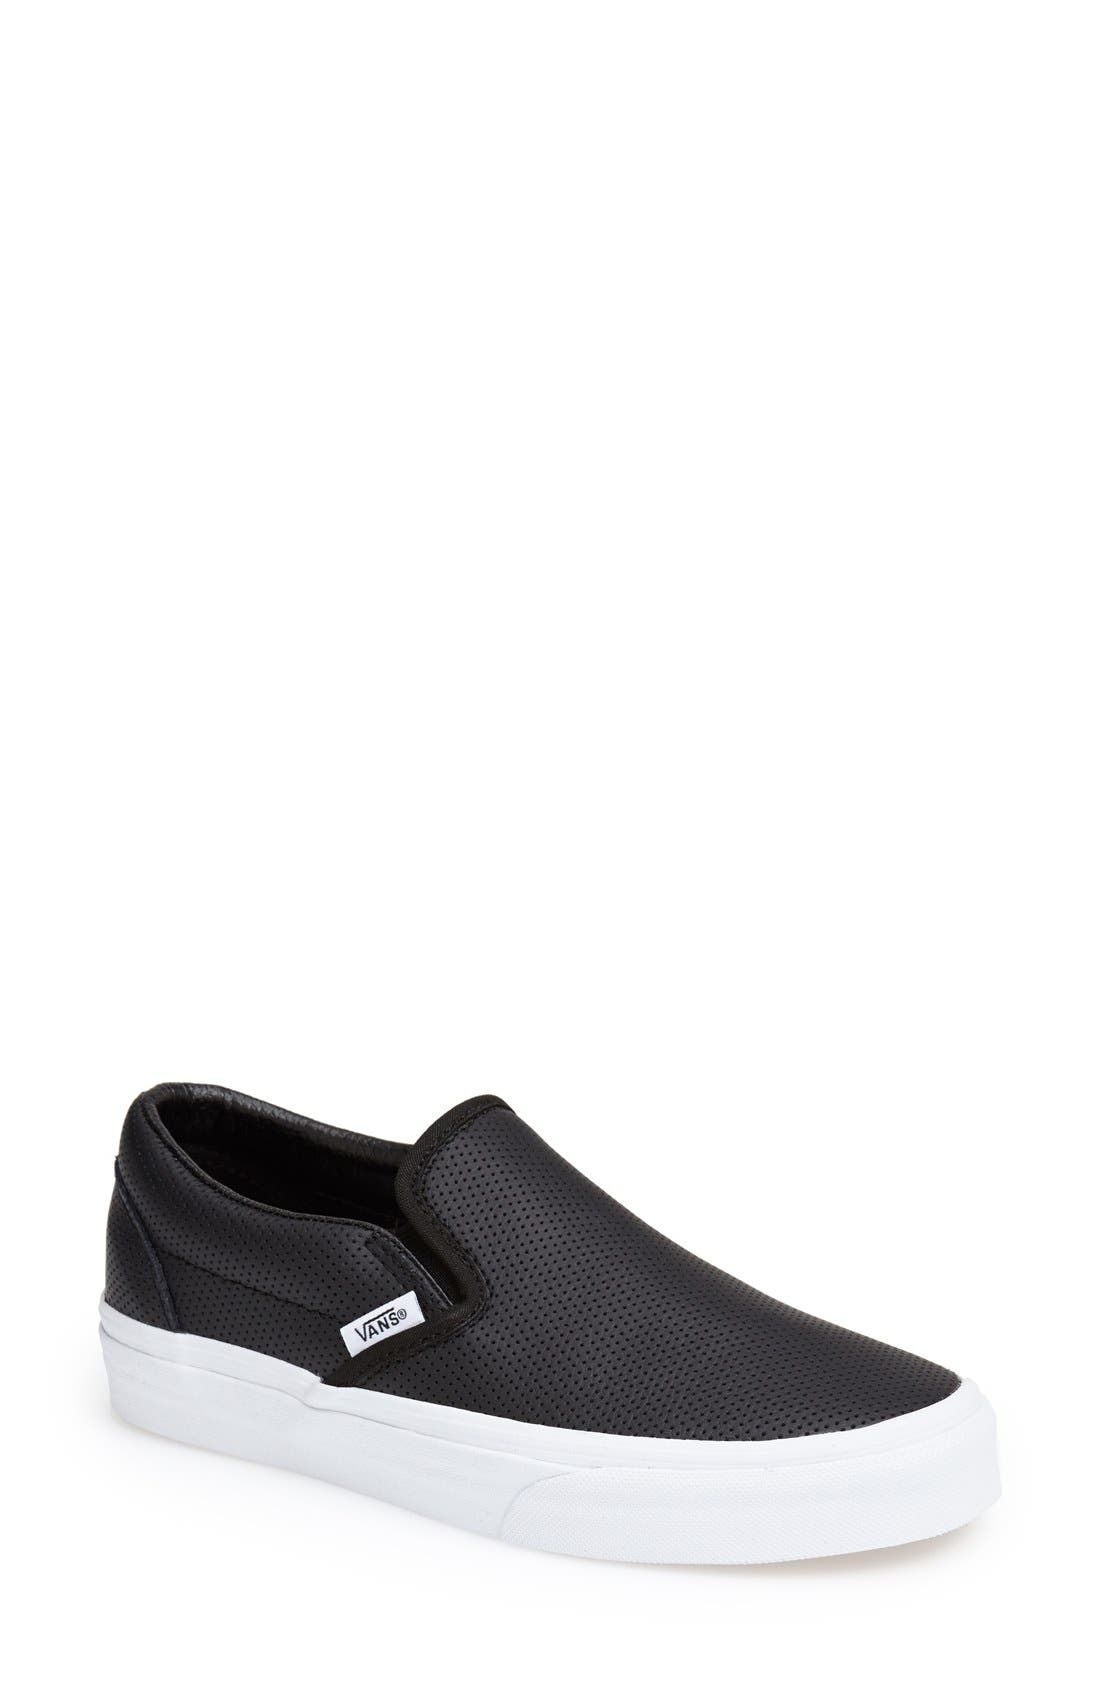 'Classic' Sneaker,                             Main thumbnail 1, color,                             Leather Black